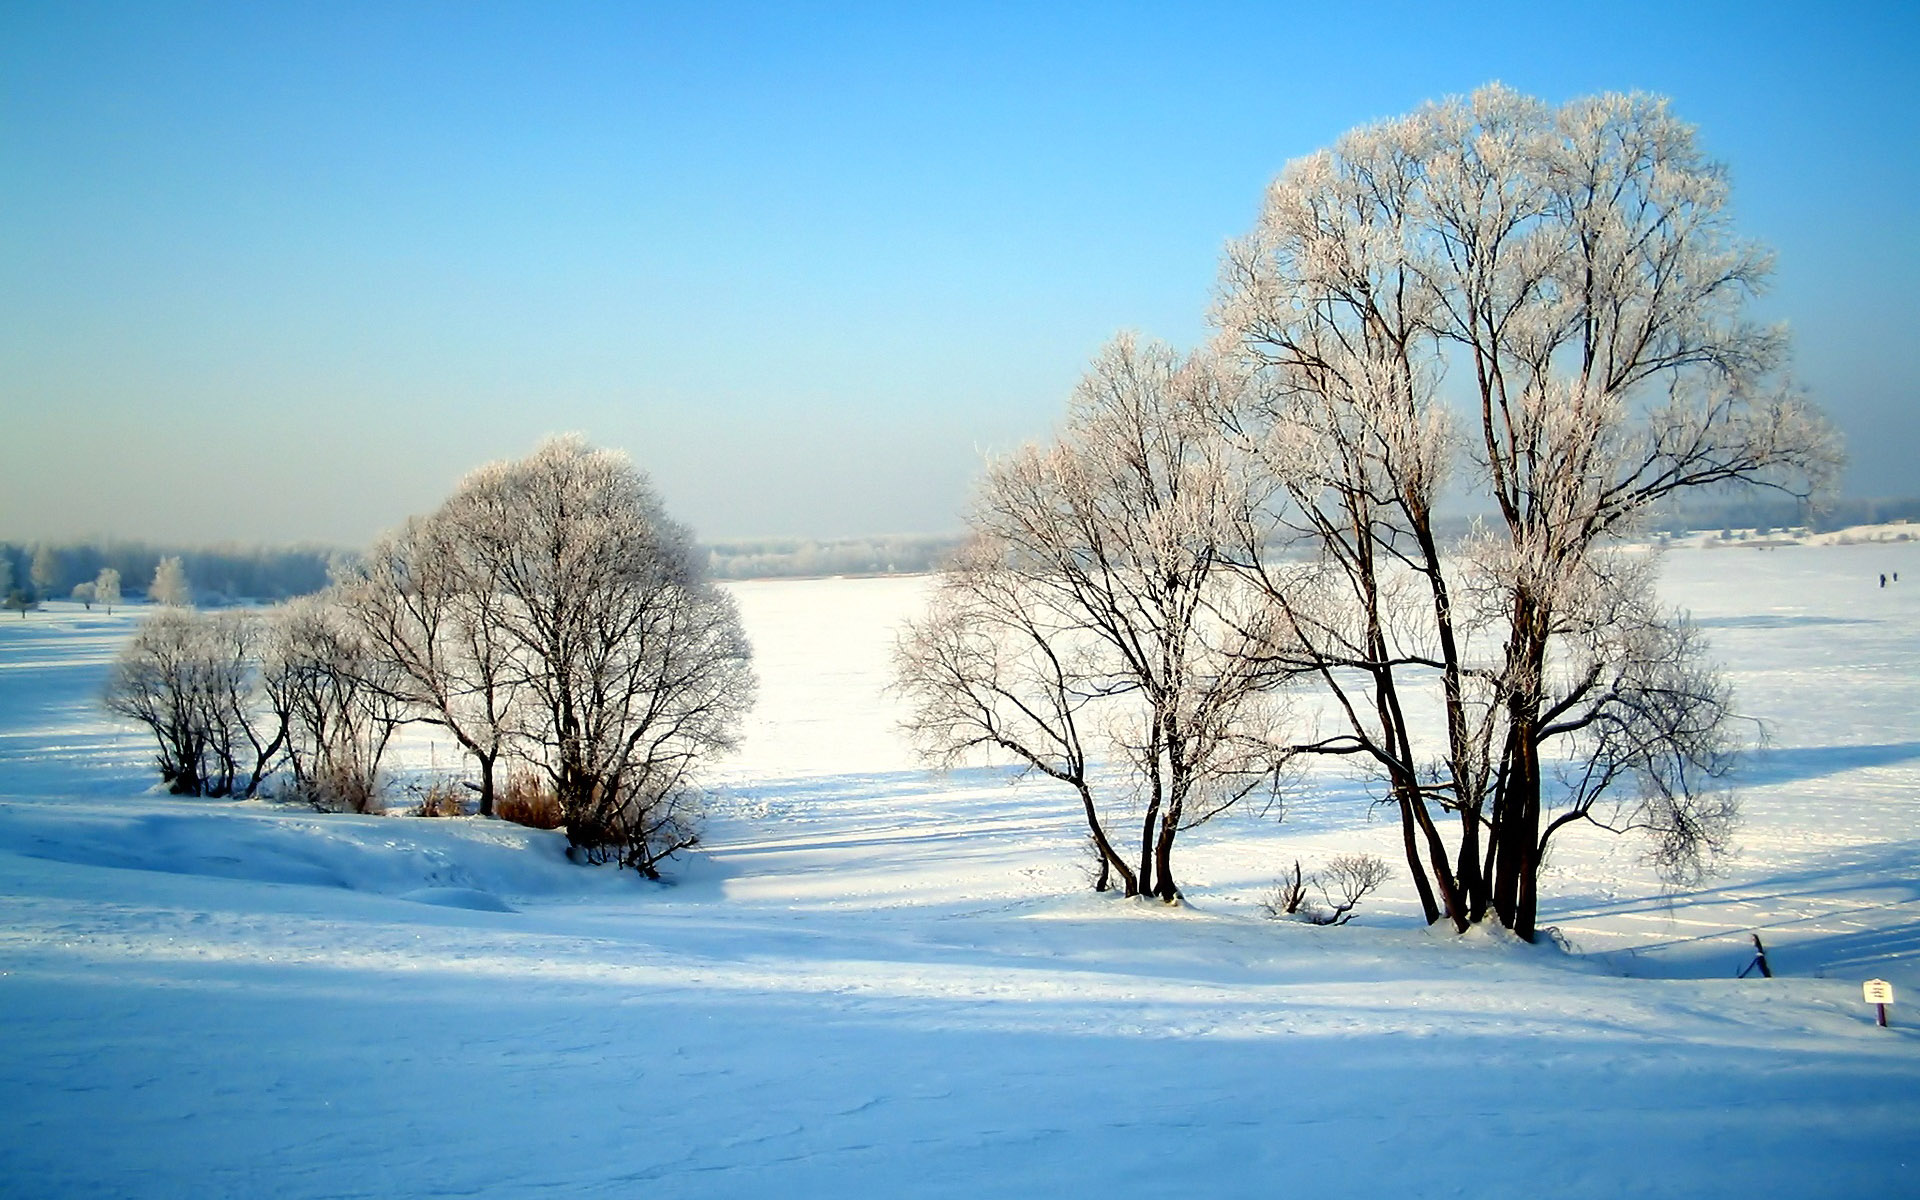 19201200 Widescreen Winter Snow Scenes   Dreamy Winter Snow Wallpaper 1920x1200